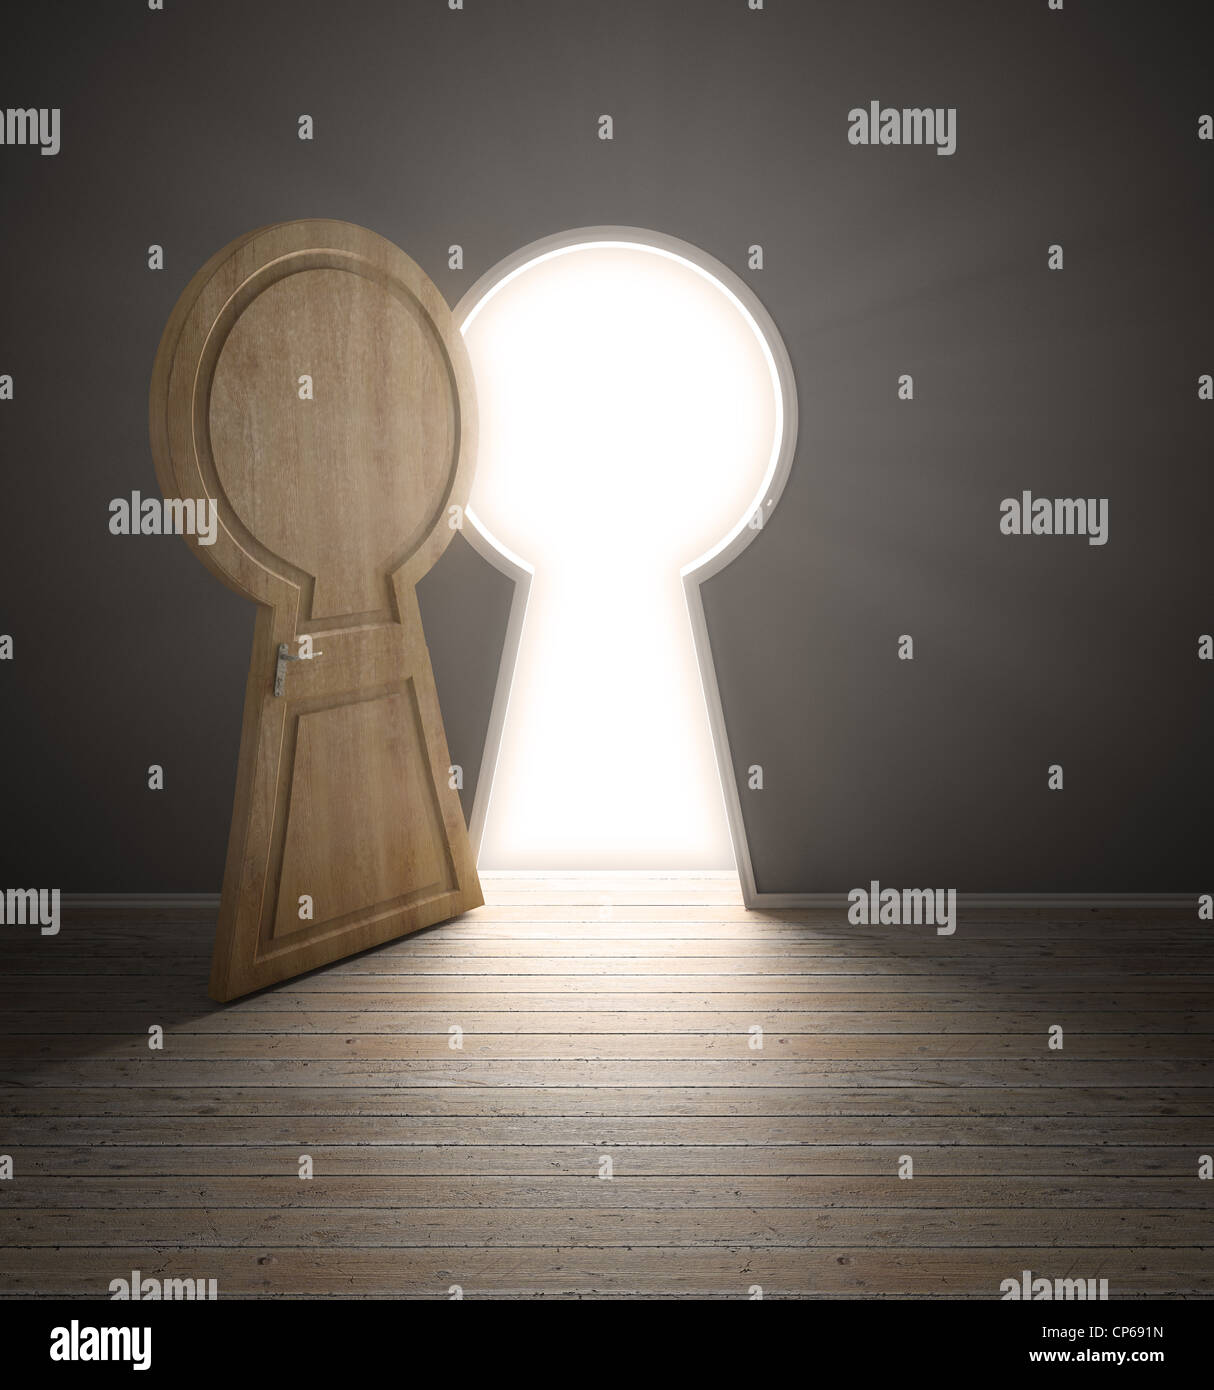 An empty interior with a door shaped like a keyhole - Stock Image